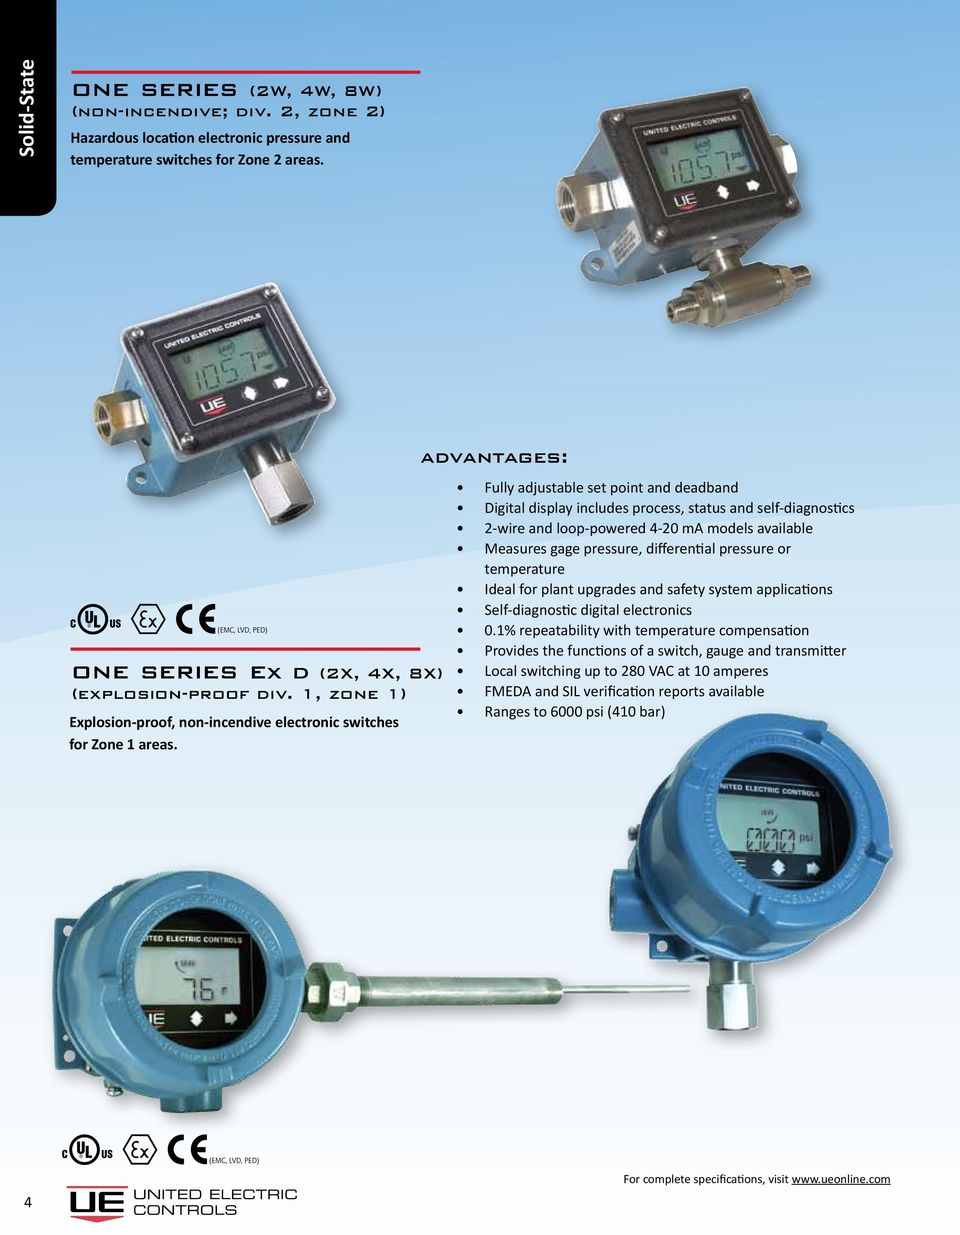 Fully adjustable set point and deadband Digital display includes process, status and self-diagnostics 2-wire and loop-powered 4-20 ma models available Measures gage pressure, differential pressure or